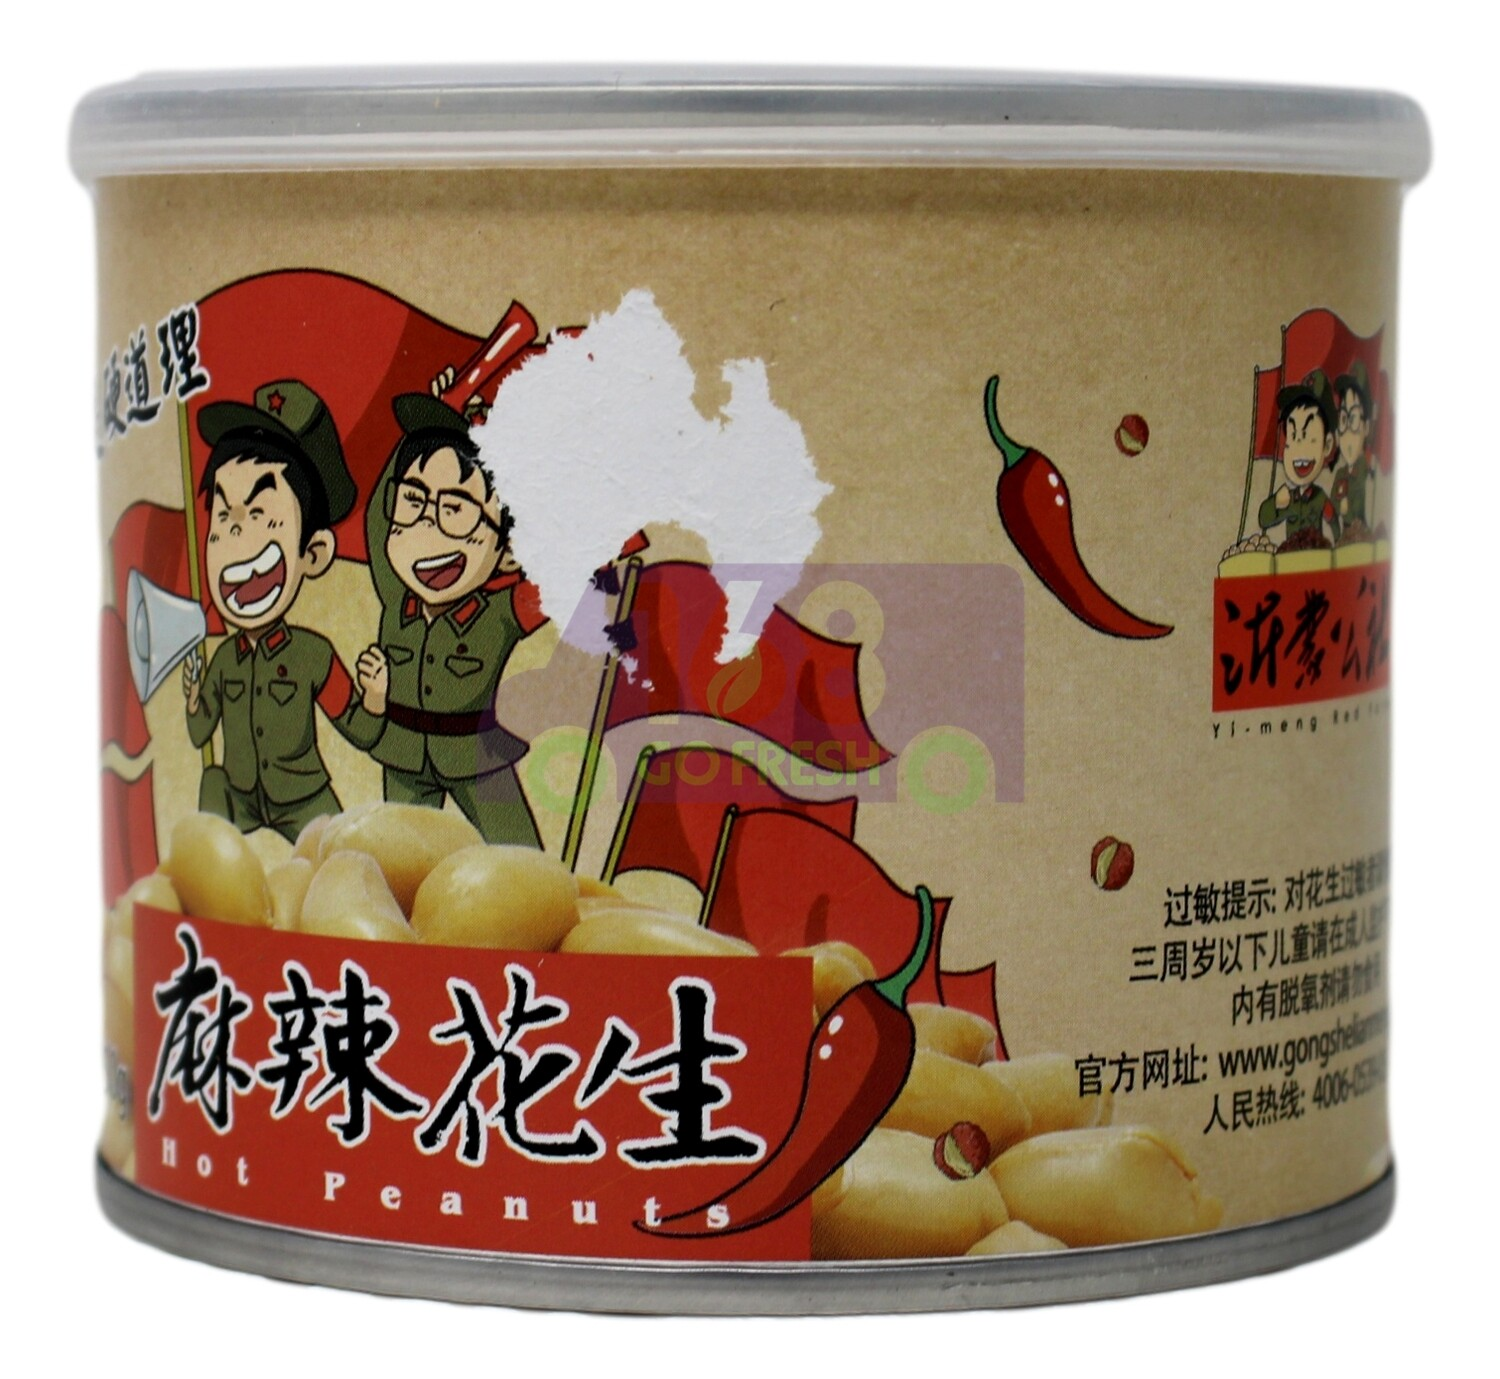 YI MENG SPICY ROAST PEANUTS 沂蒙公社 麻辣花生(150G)